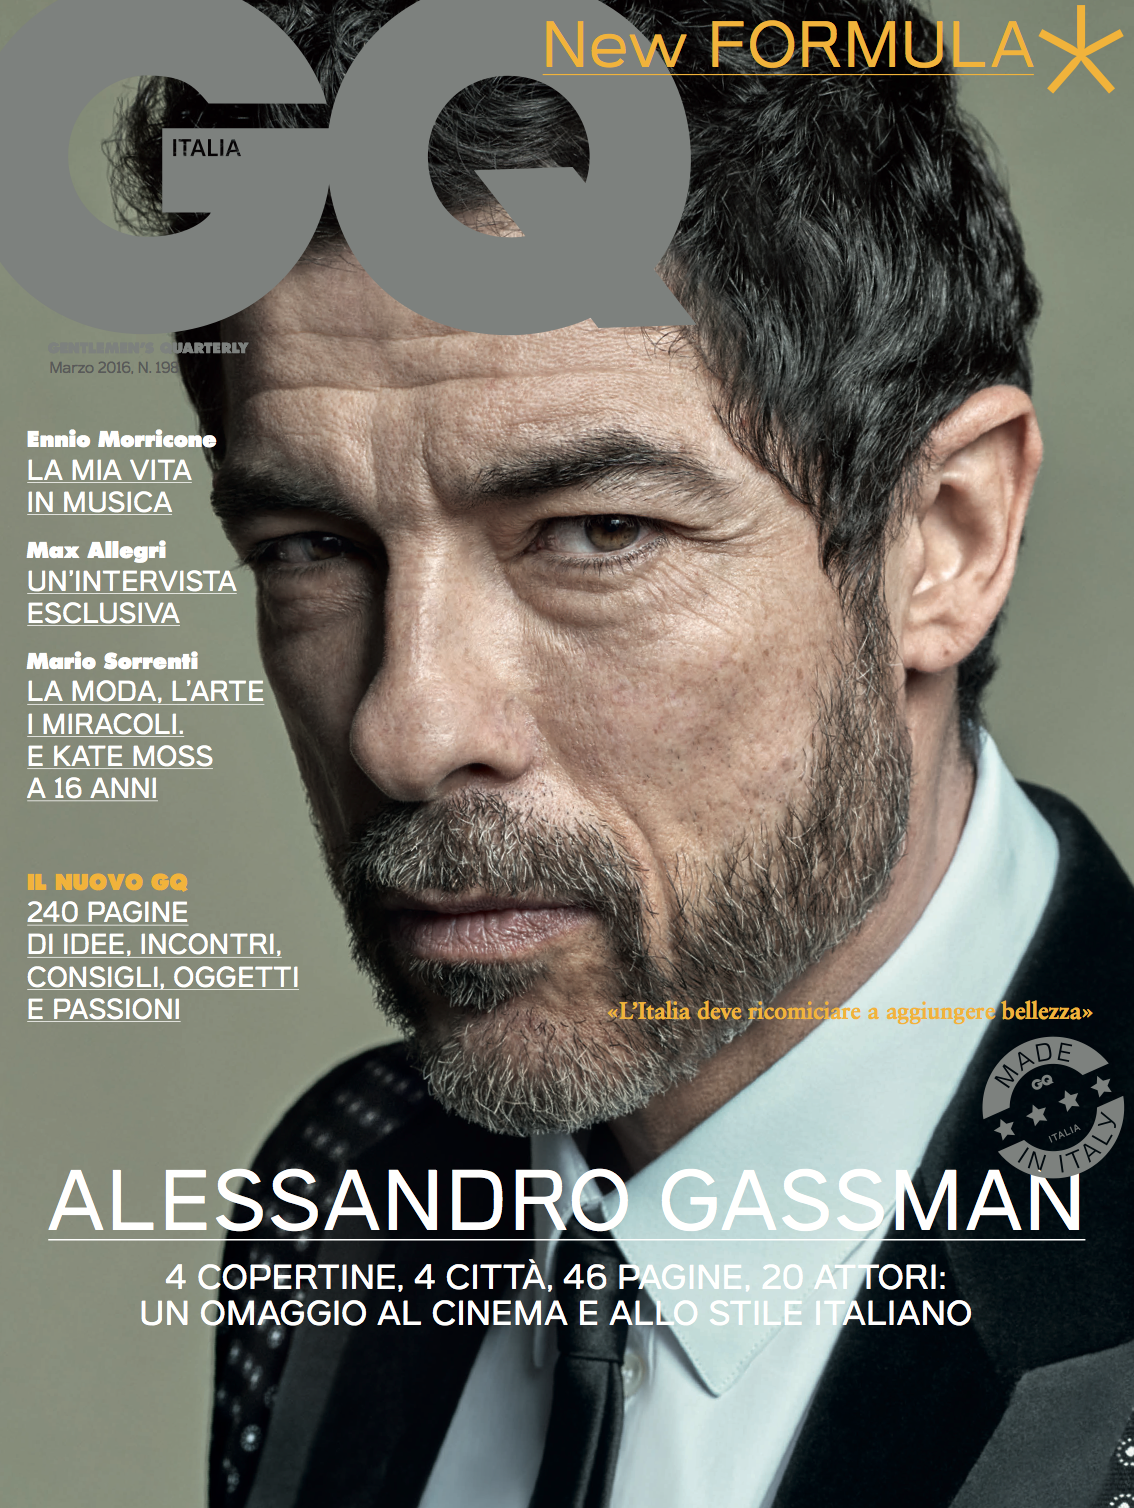 Alessandro Gassmann (GQ March 2016)